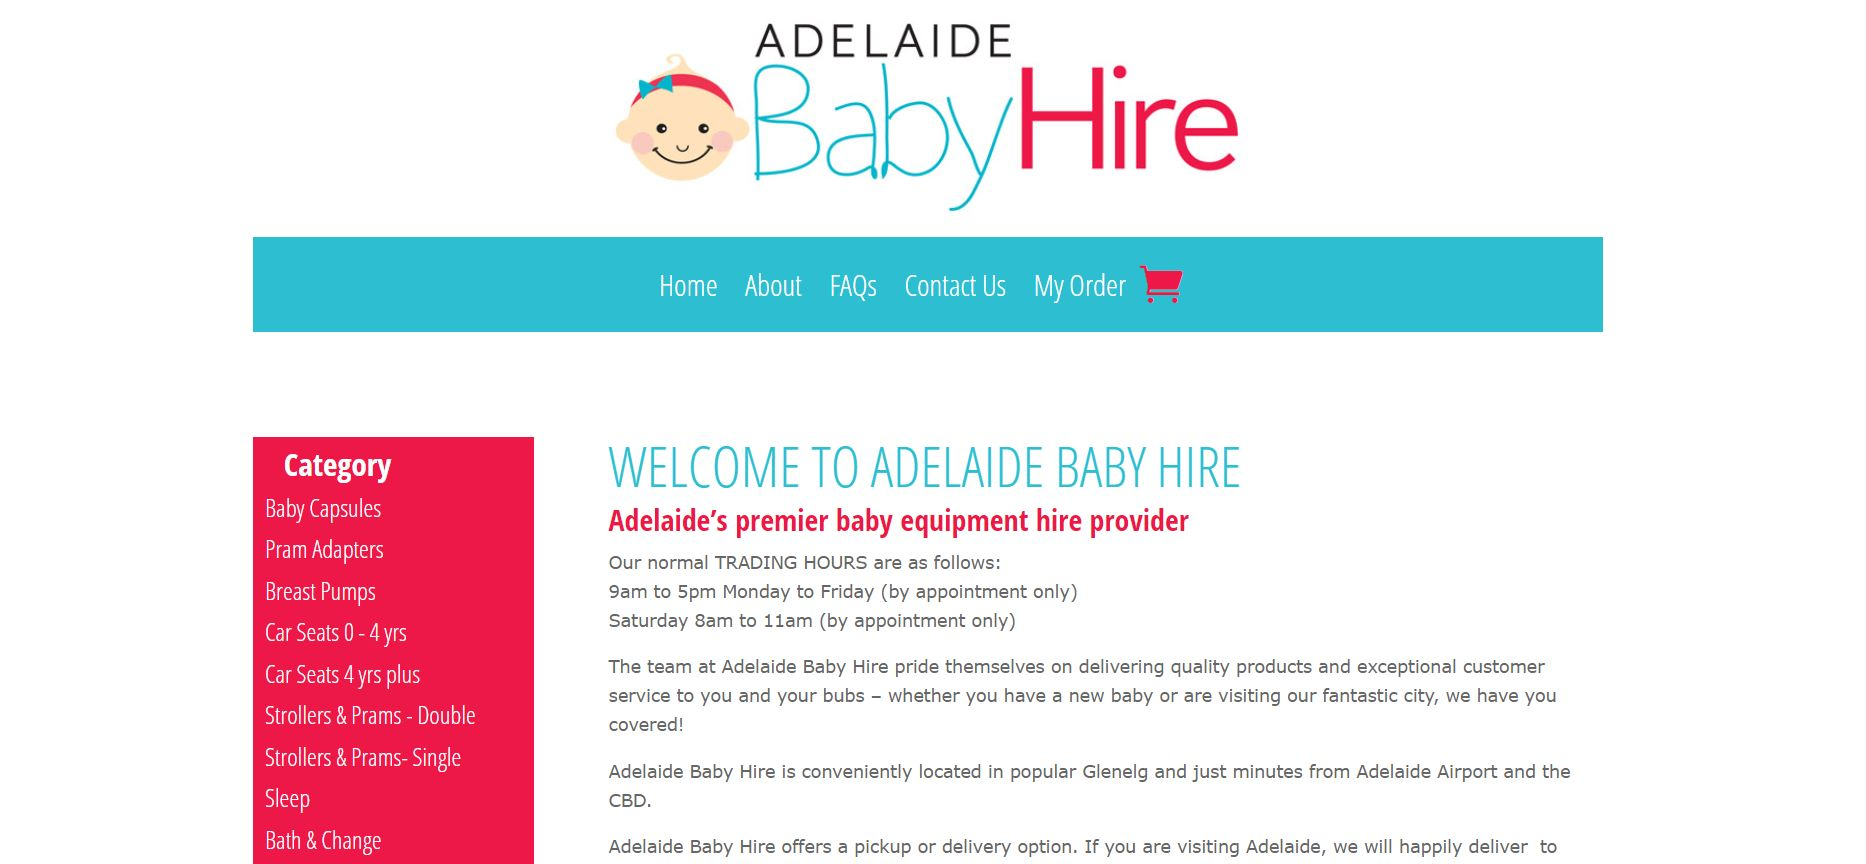 adelaide baby hire